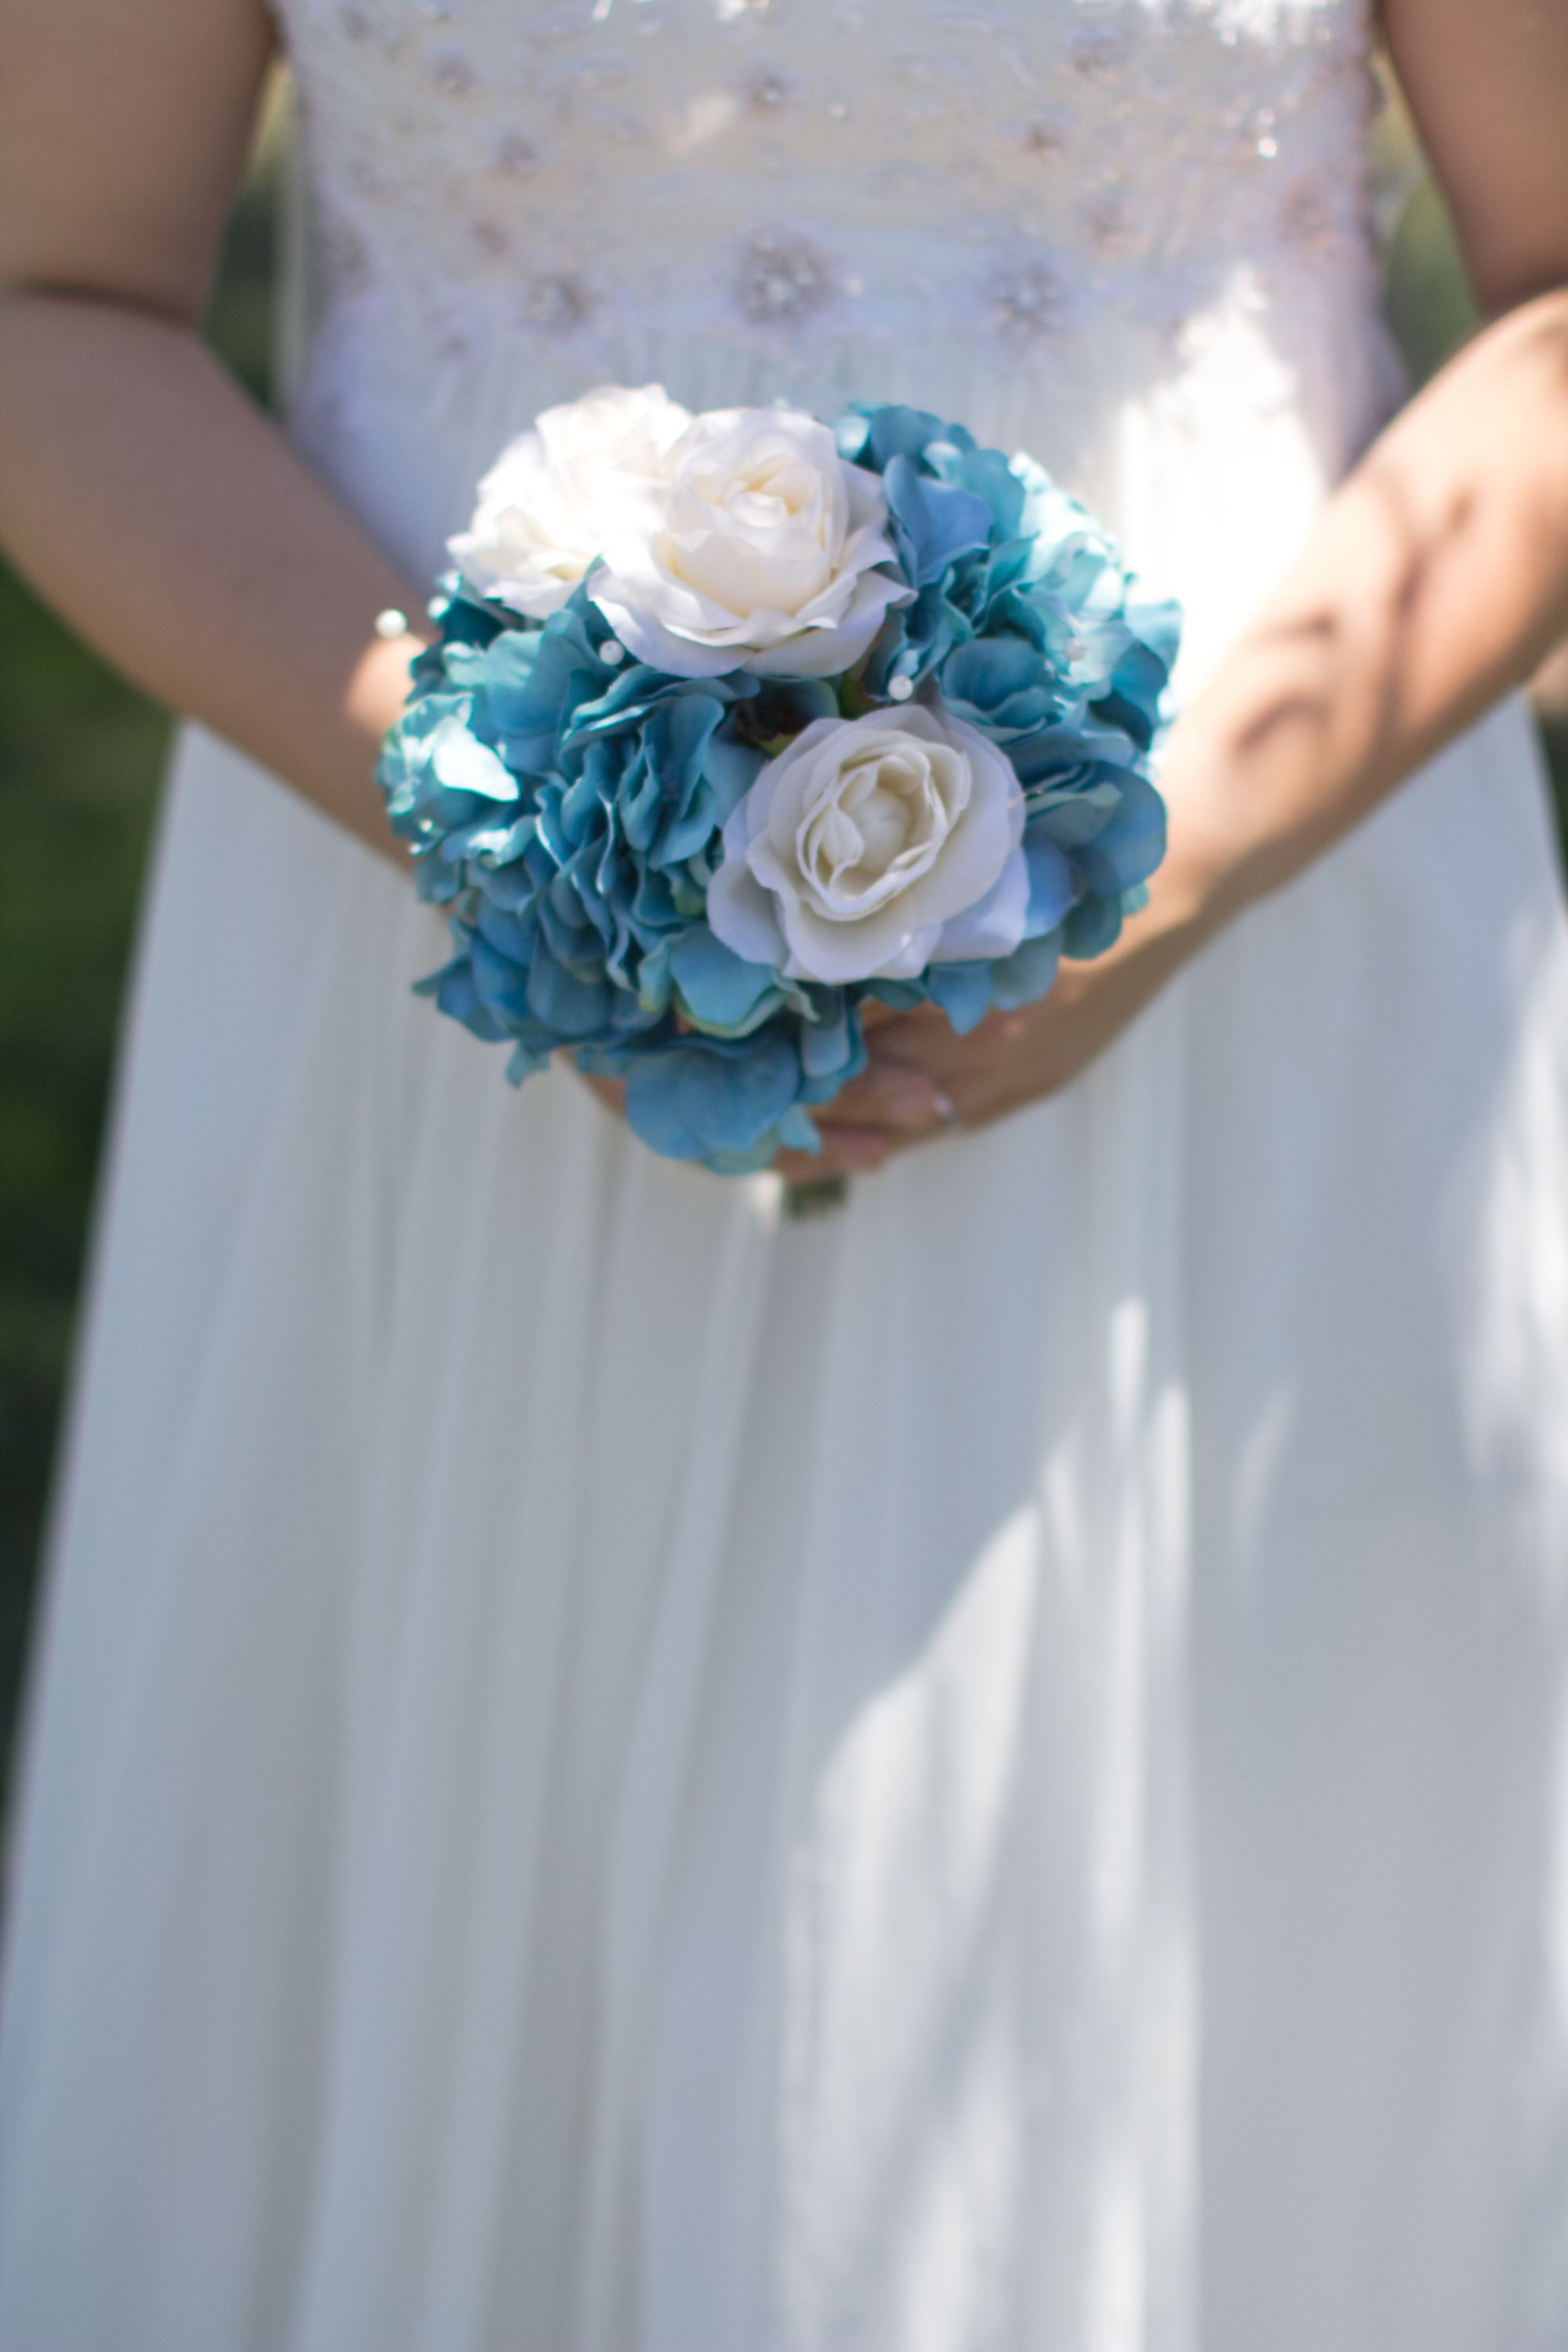 My homemade wedding bouquet wedding ideas pinterest weddings